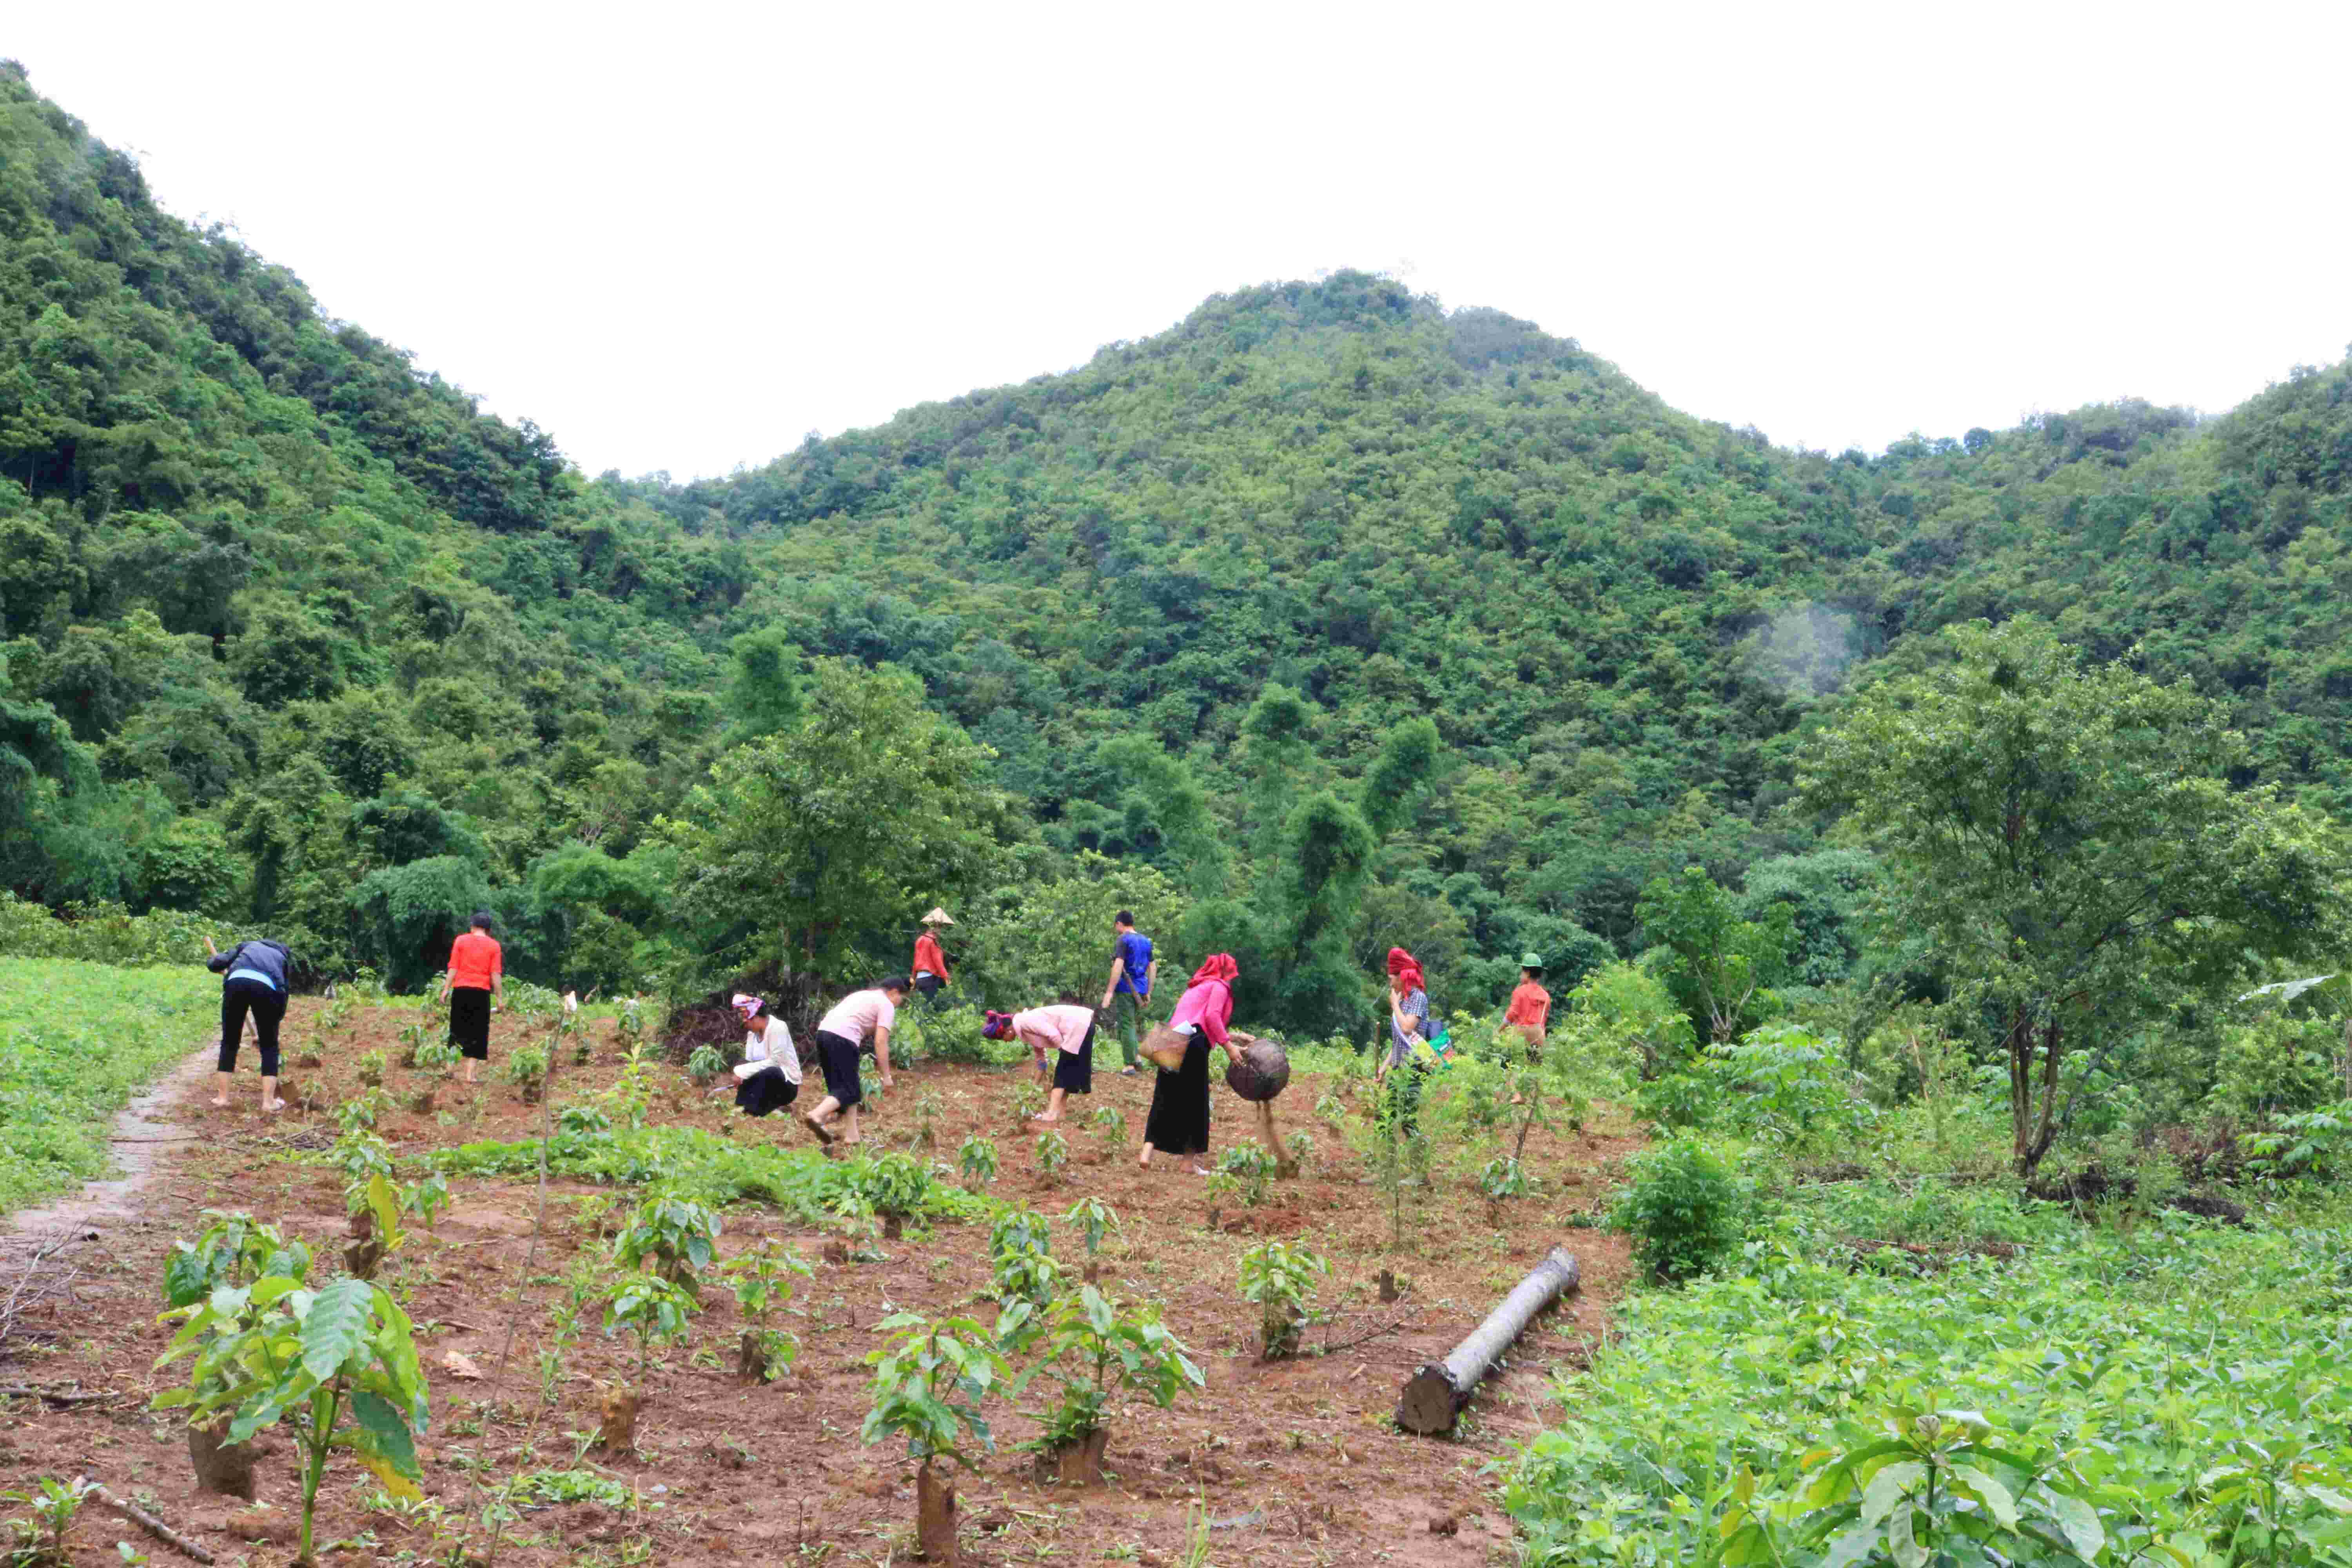 Thai ethnic people are using compost to fertilize the soil in their hill garden-compressed